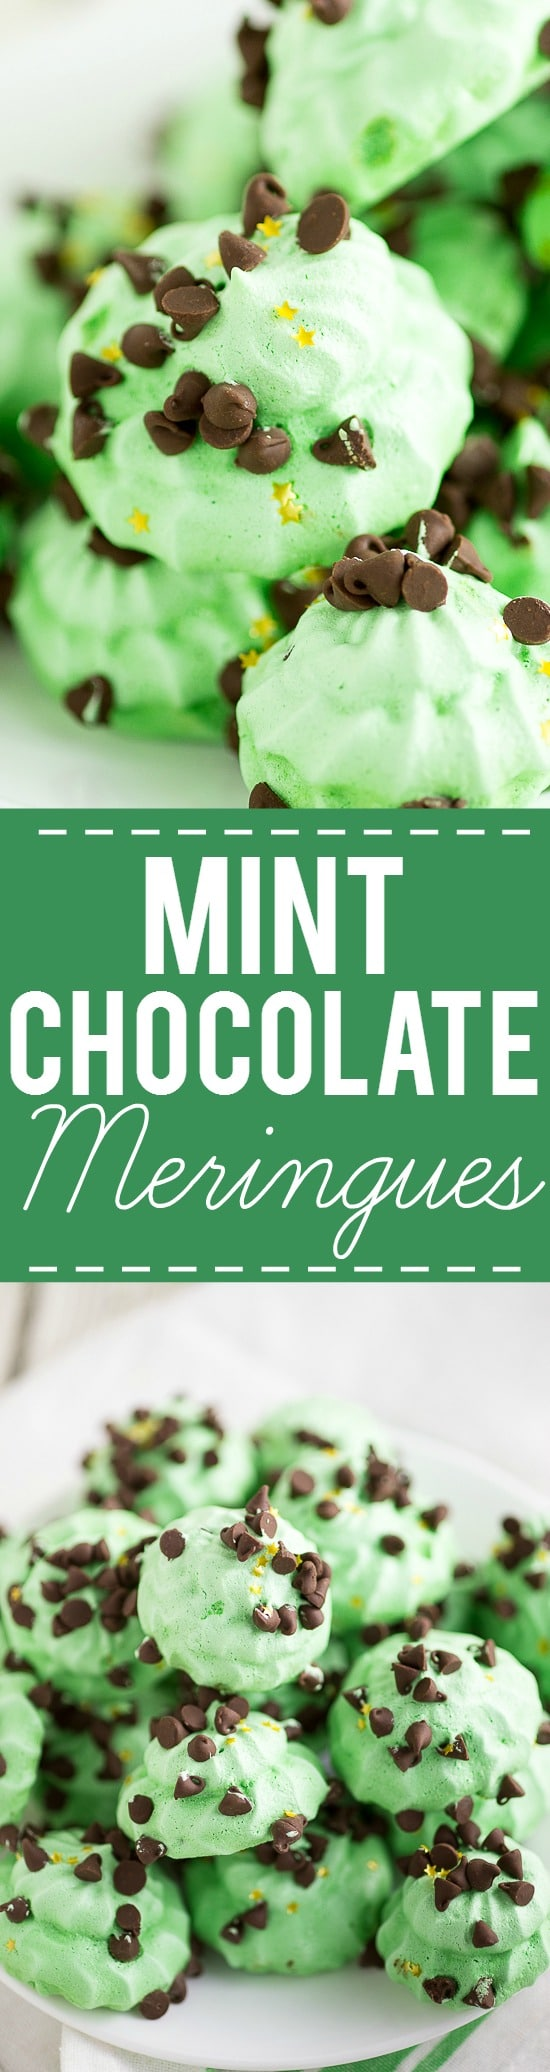 Mint Chocolate Meringues Recipe - Light and fluffy with the perfect amount of crispy, these cool and minty Mint Chocolate Meringues are perfect for mint chocolate lovers. Festive for Christmas or St Patrick's Day too!